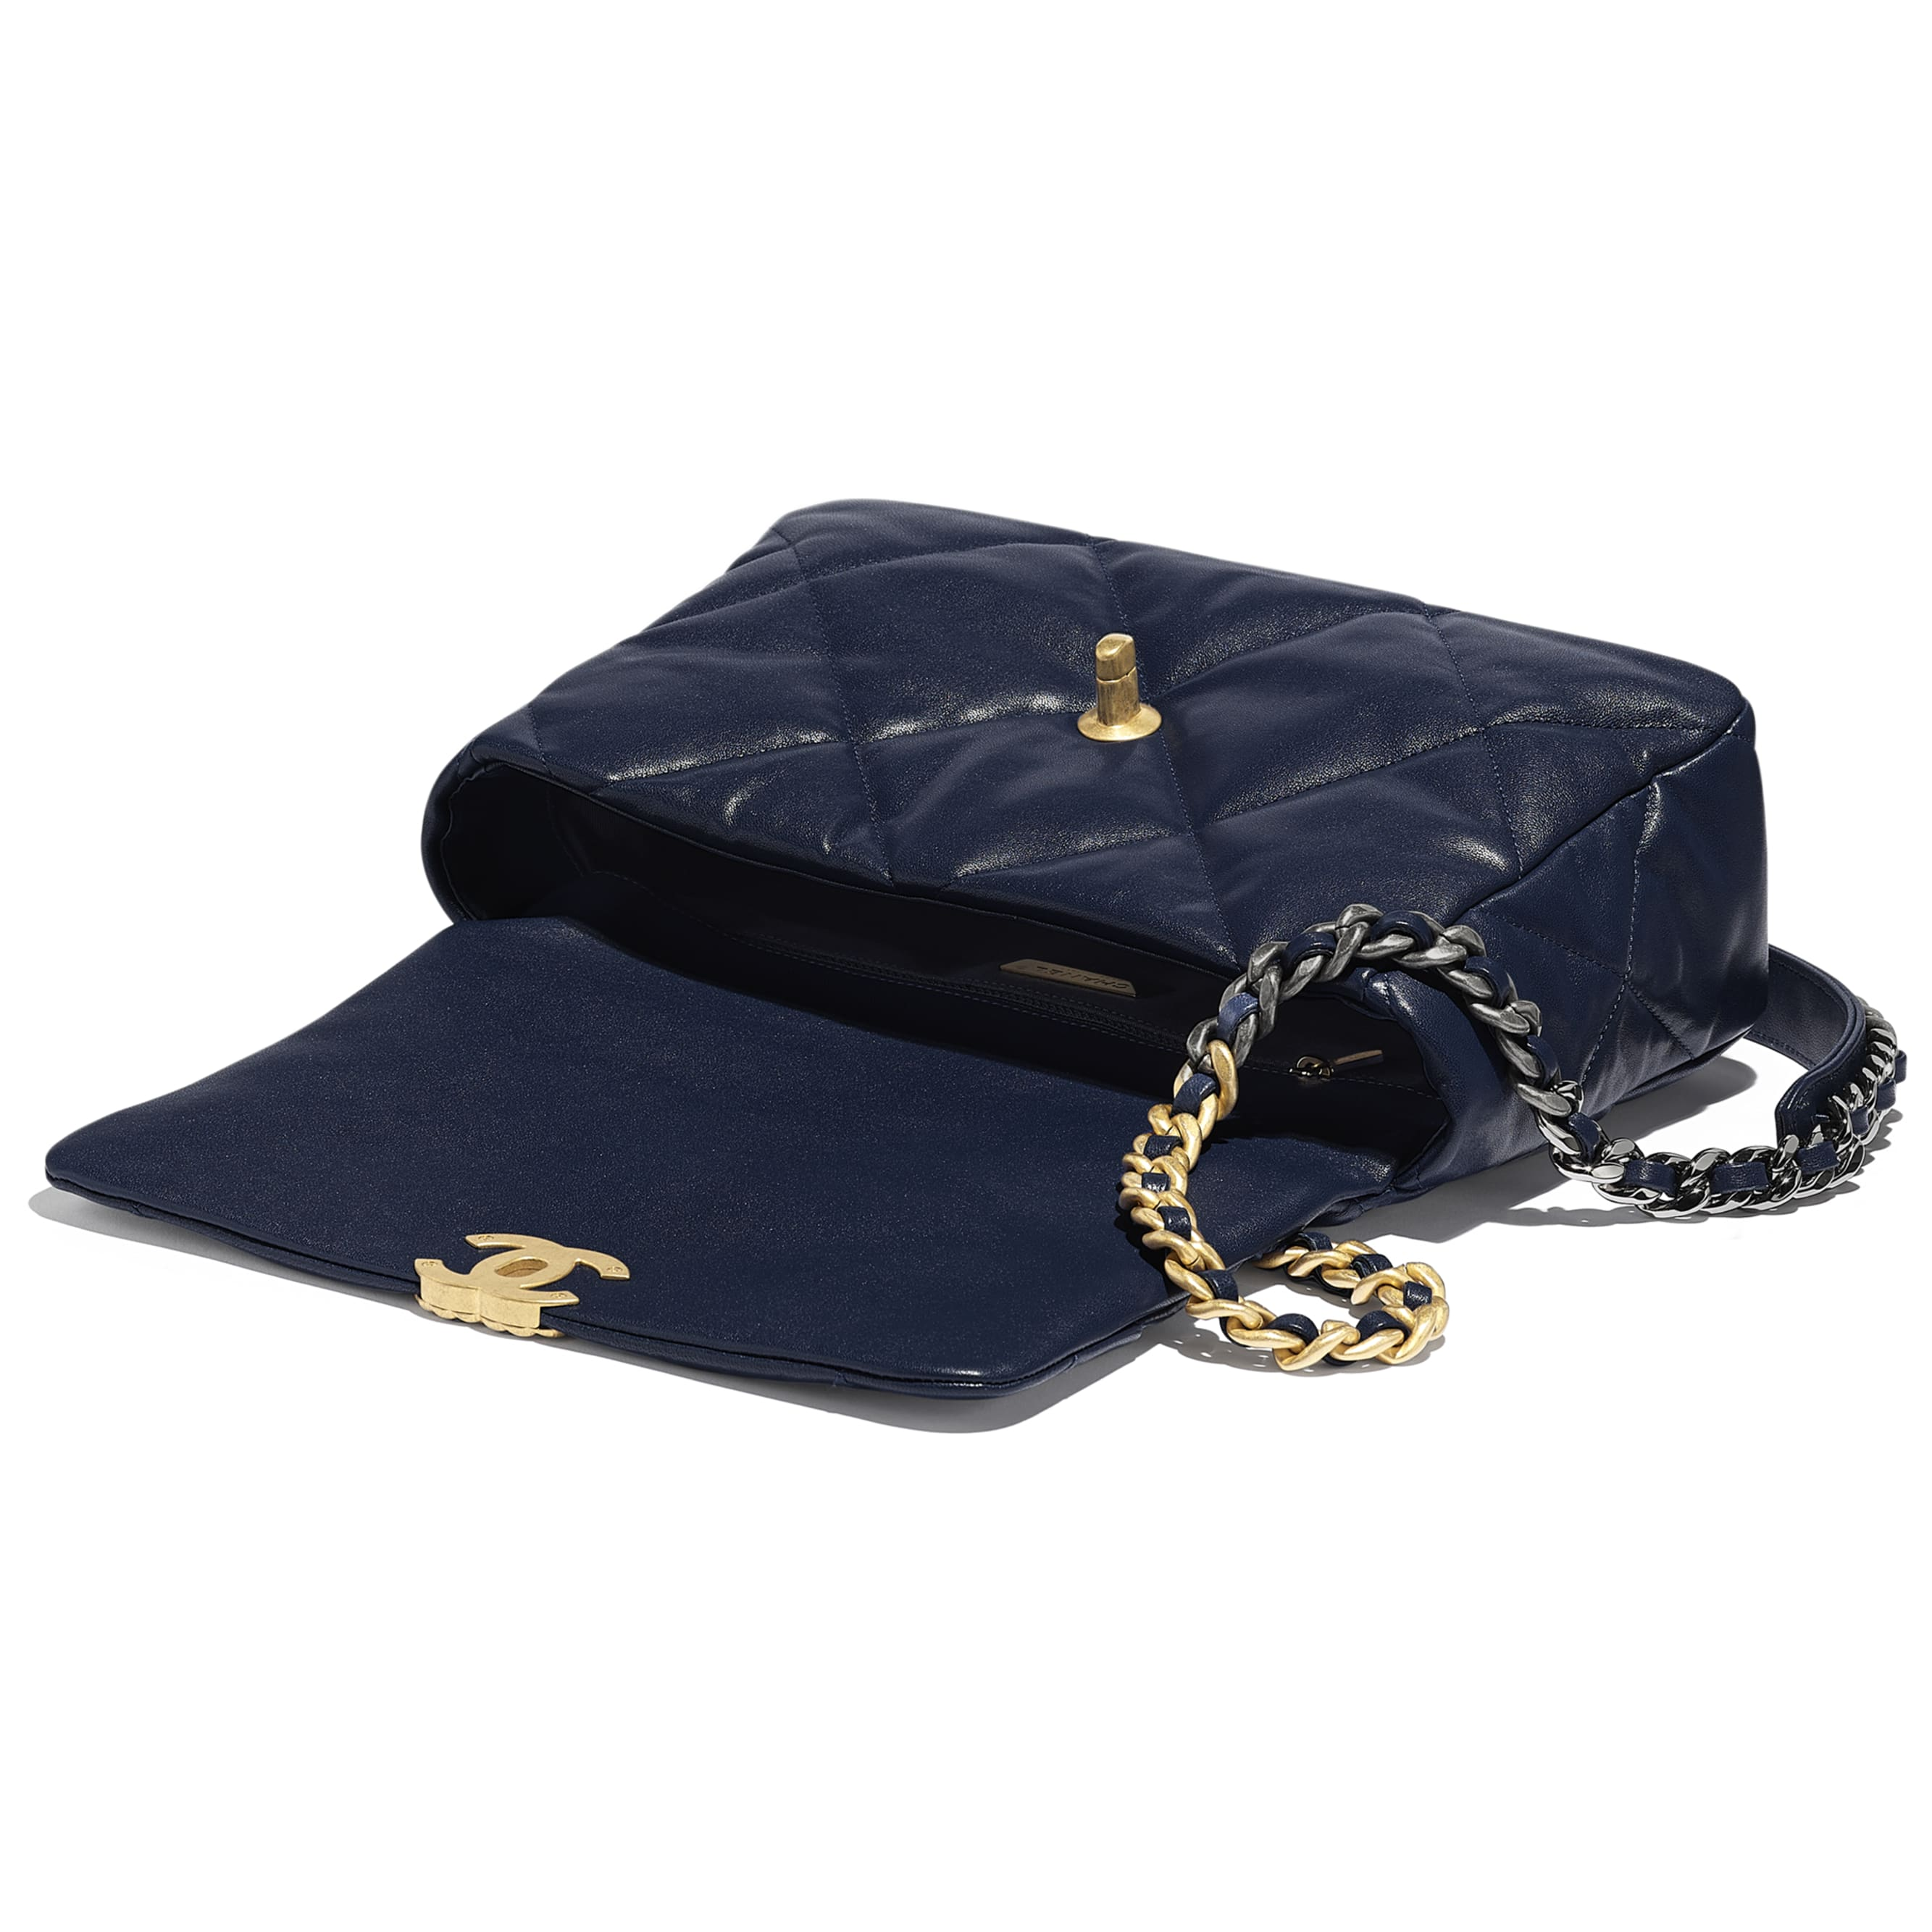 CHANEL 19 Large Flap Bag - Navy Blue - Lambskin, Gold-Tone, Silver-Tone & Ruthenium-Finish Metal - Other view - see standard sized version